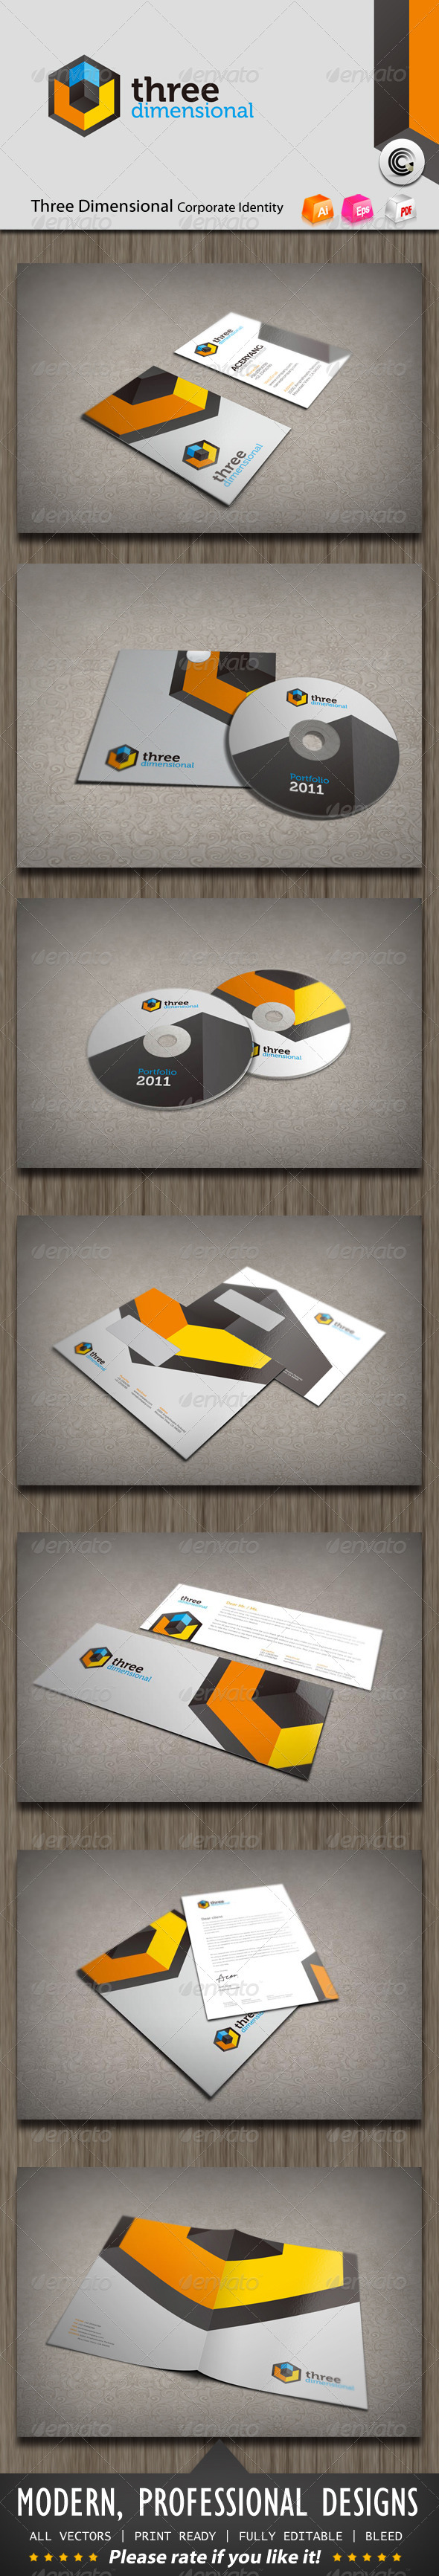 GraphicRiver Three Dimensional Corporate Identity 872571